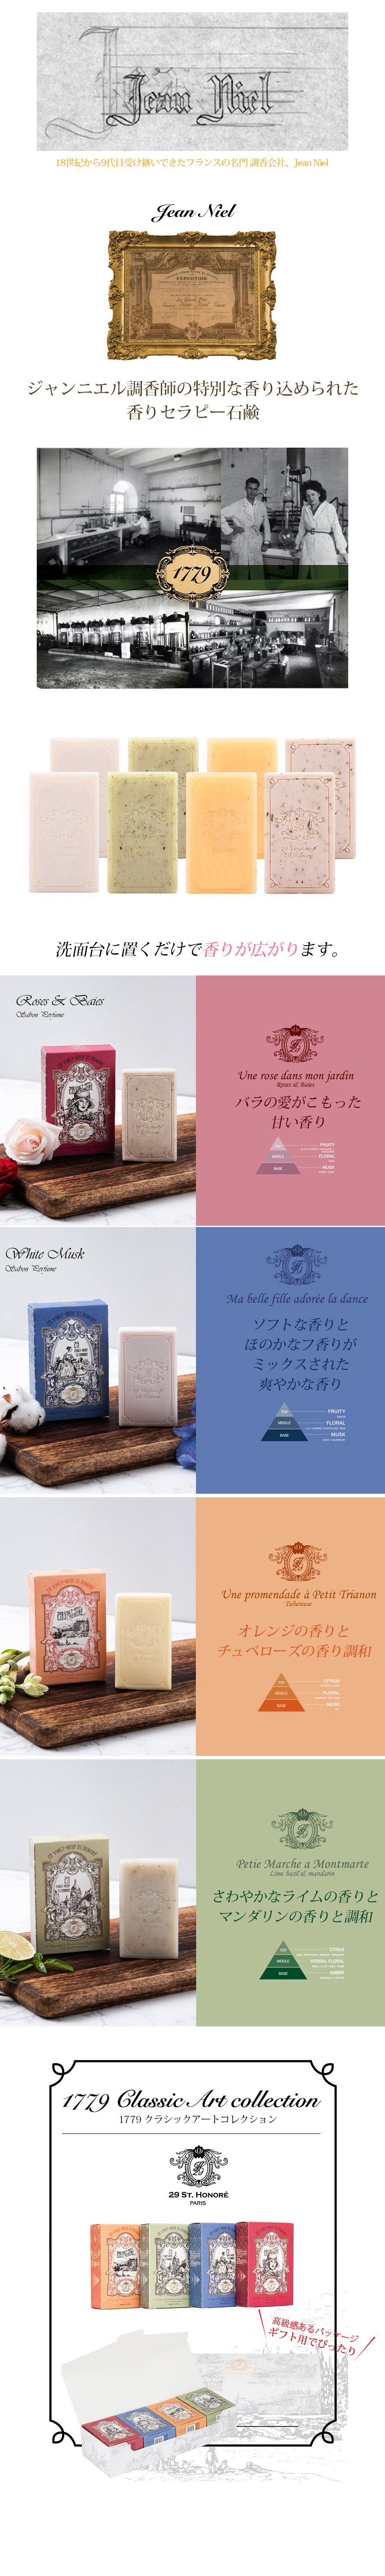 [29st.Honore]ヴァンネフサントノレ香り石鹸1箱プレゼント用/8個セット